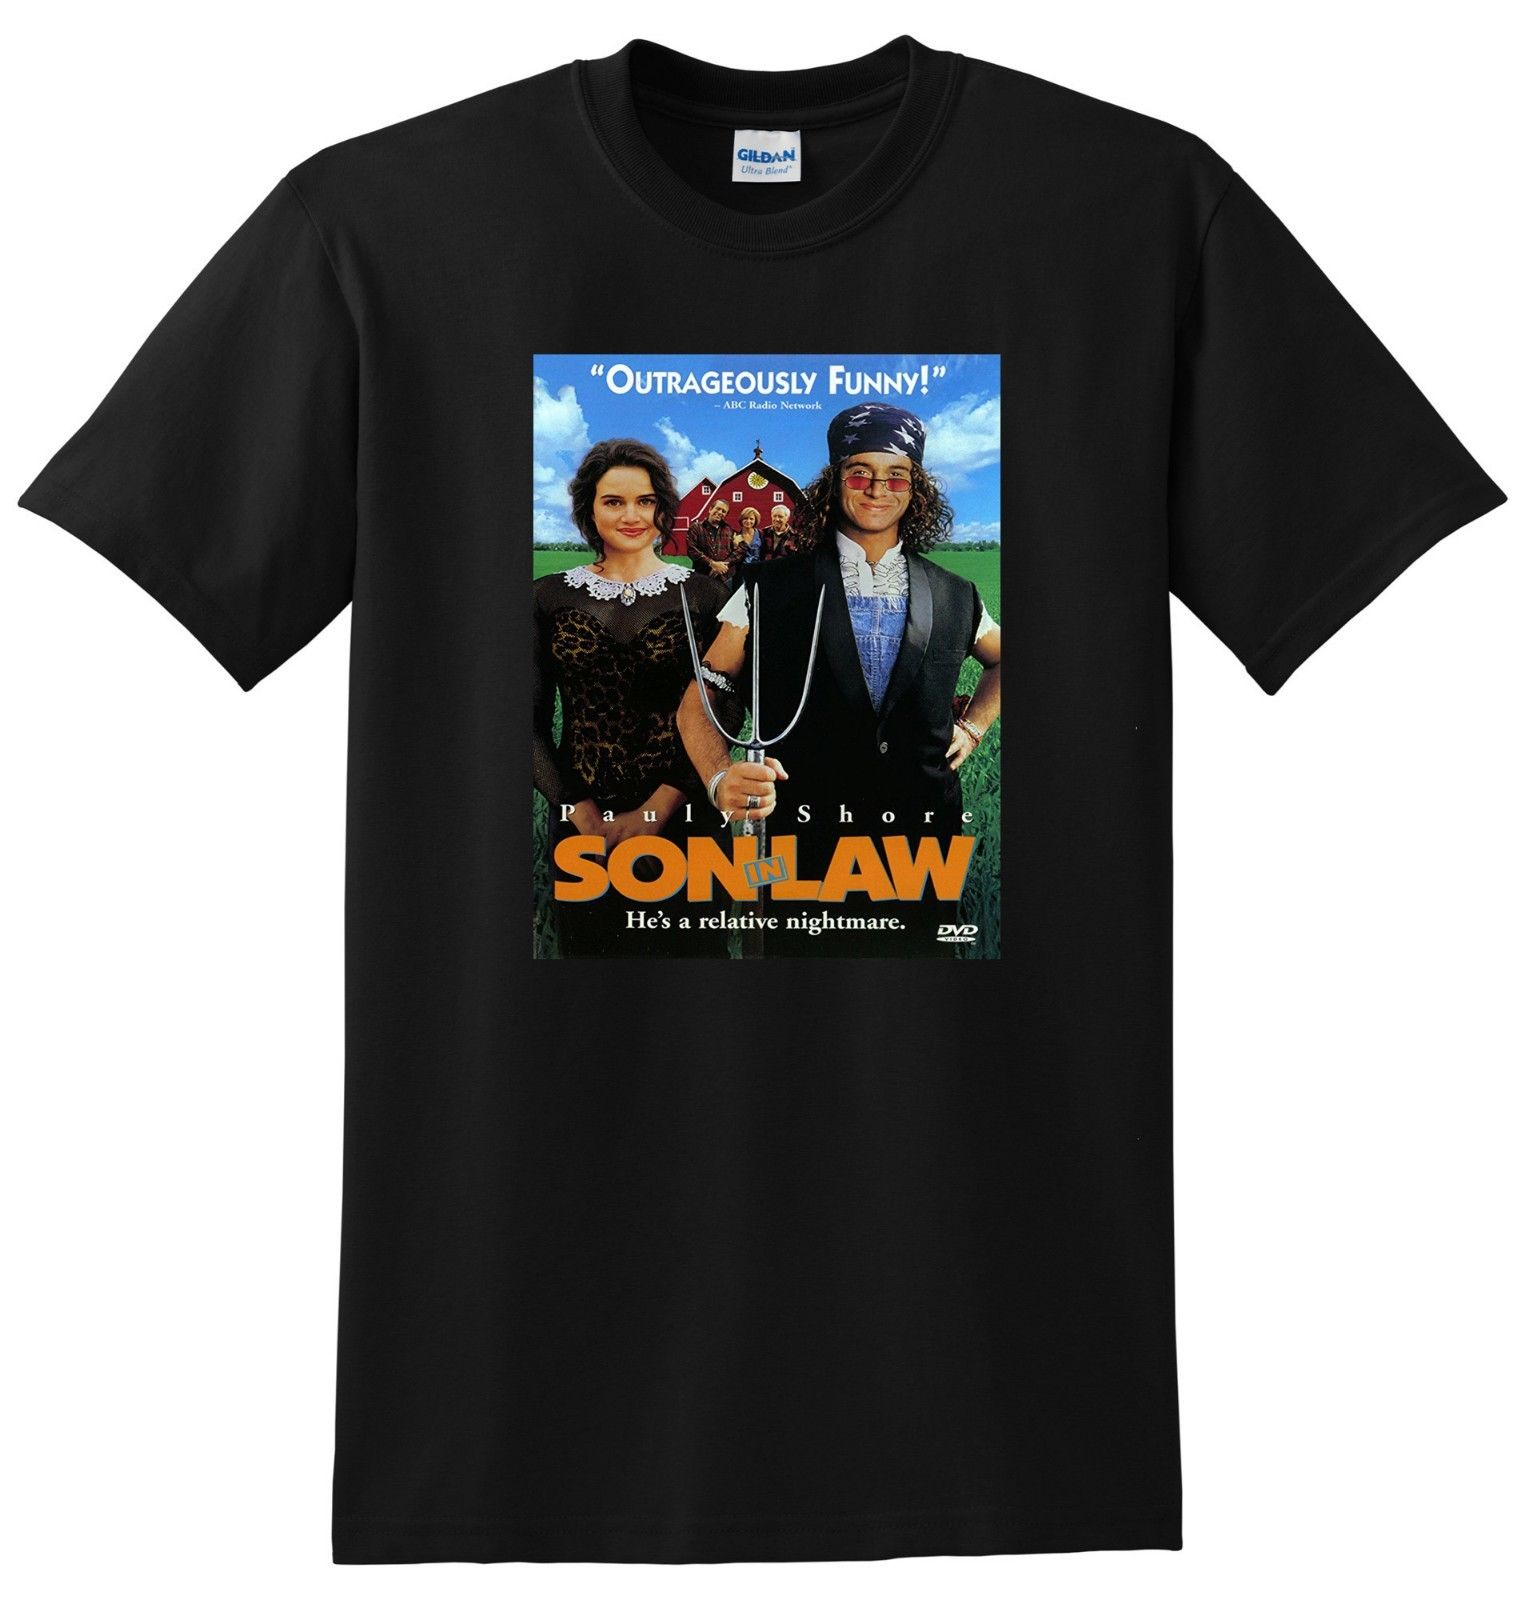 SON IN LAW T SHIRT Pauly Shore Movie Poster Tee S-3XL Tops T Shirt Homme Teenage Natural Cotton Printed Top Tee image